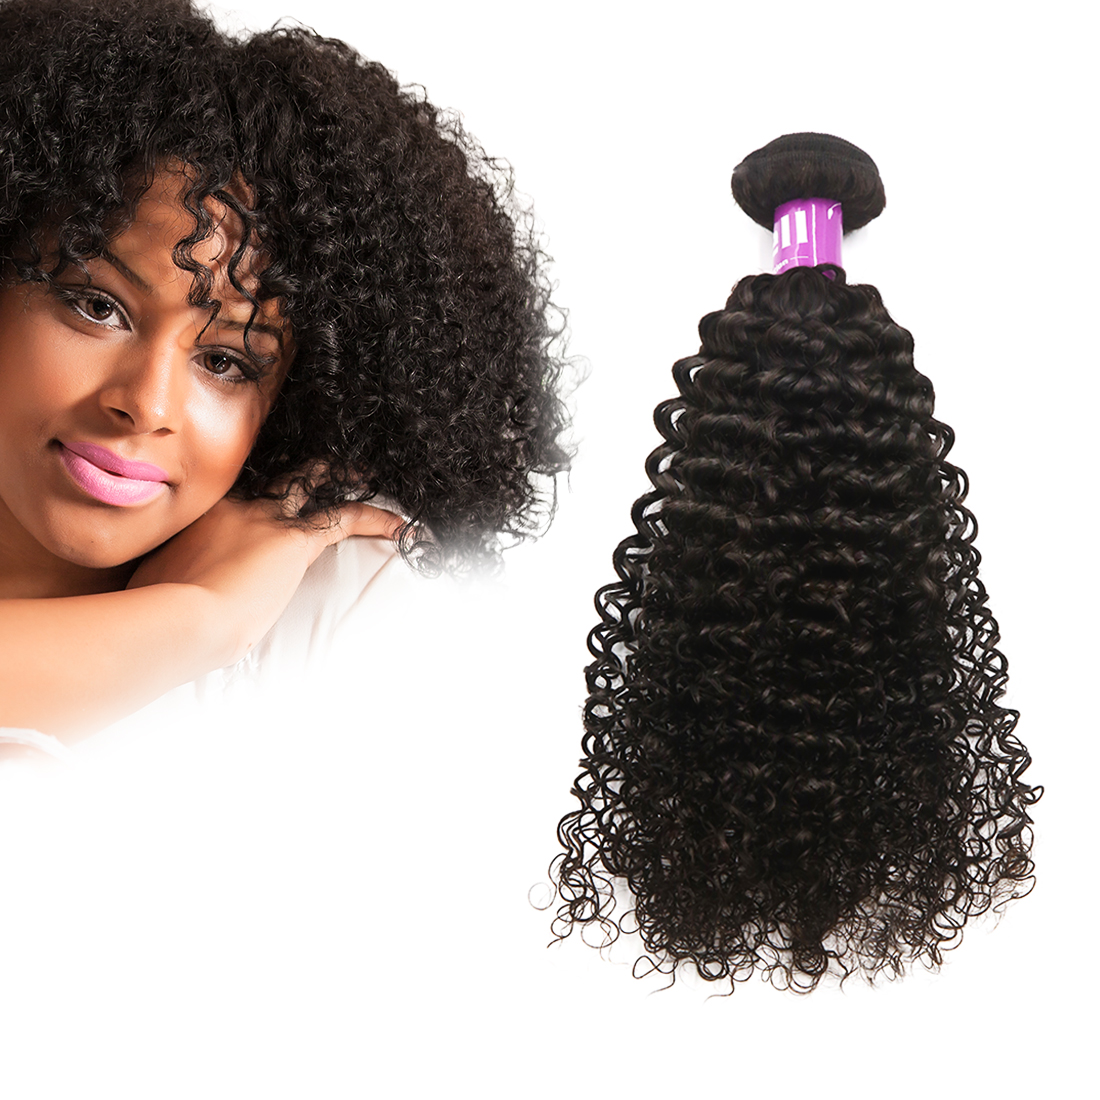 """Peruvian Unprocessed Virgin Jerry Curly Human Hair Extensions Wave 24"""" 1 Bundle"""